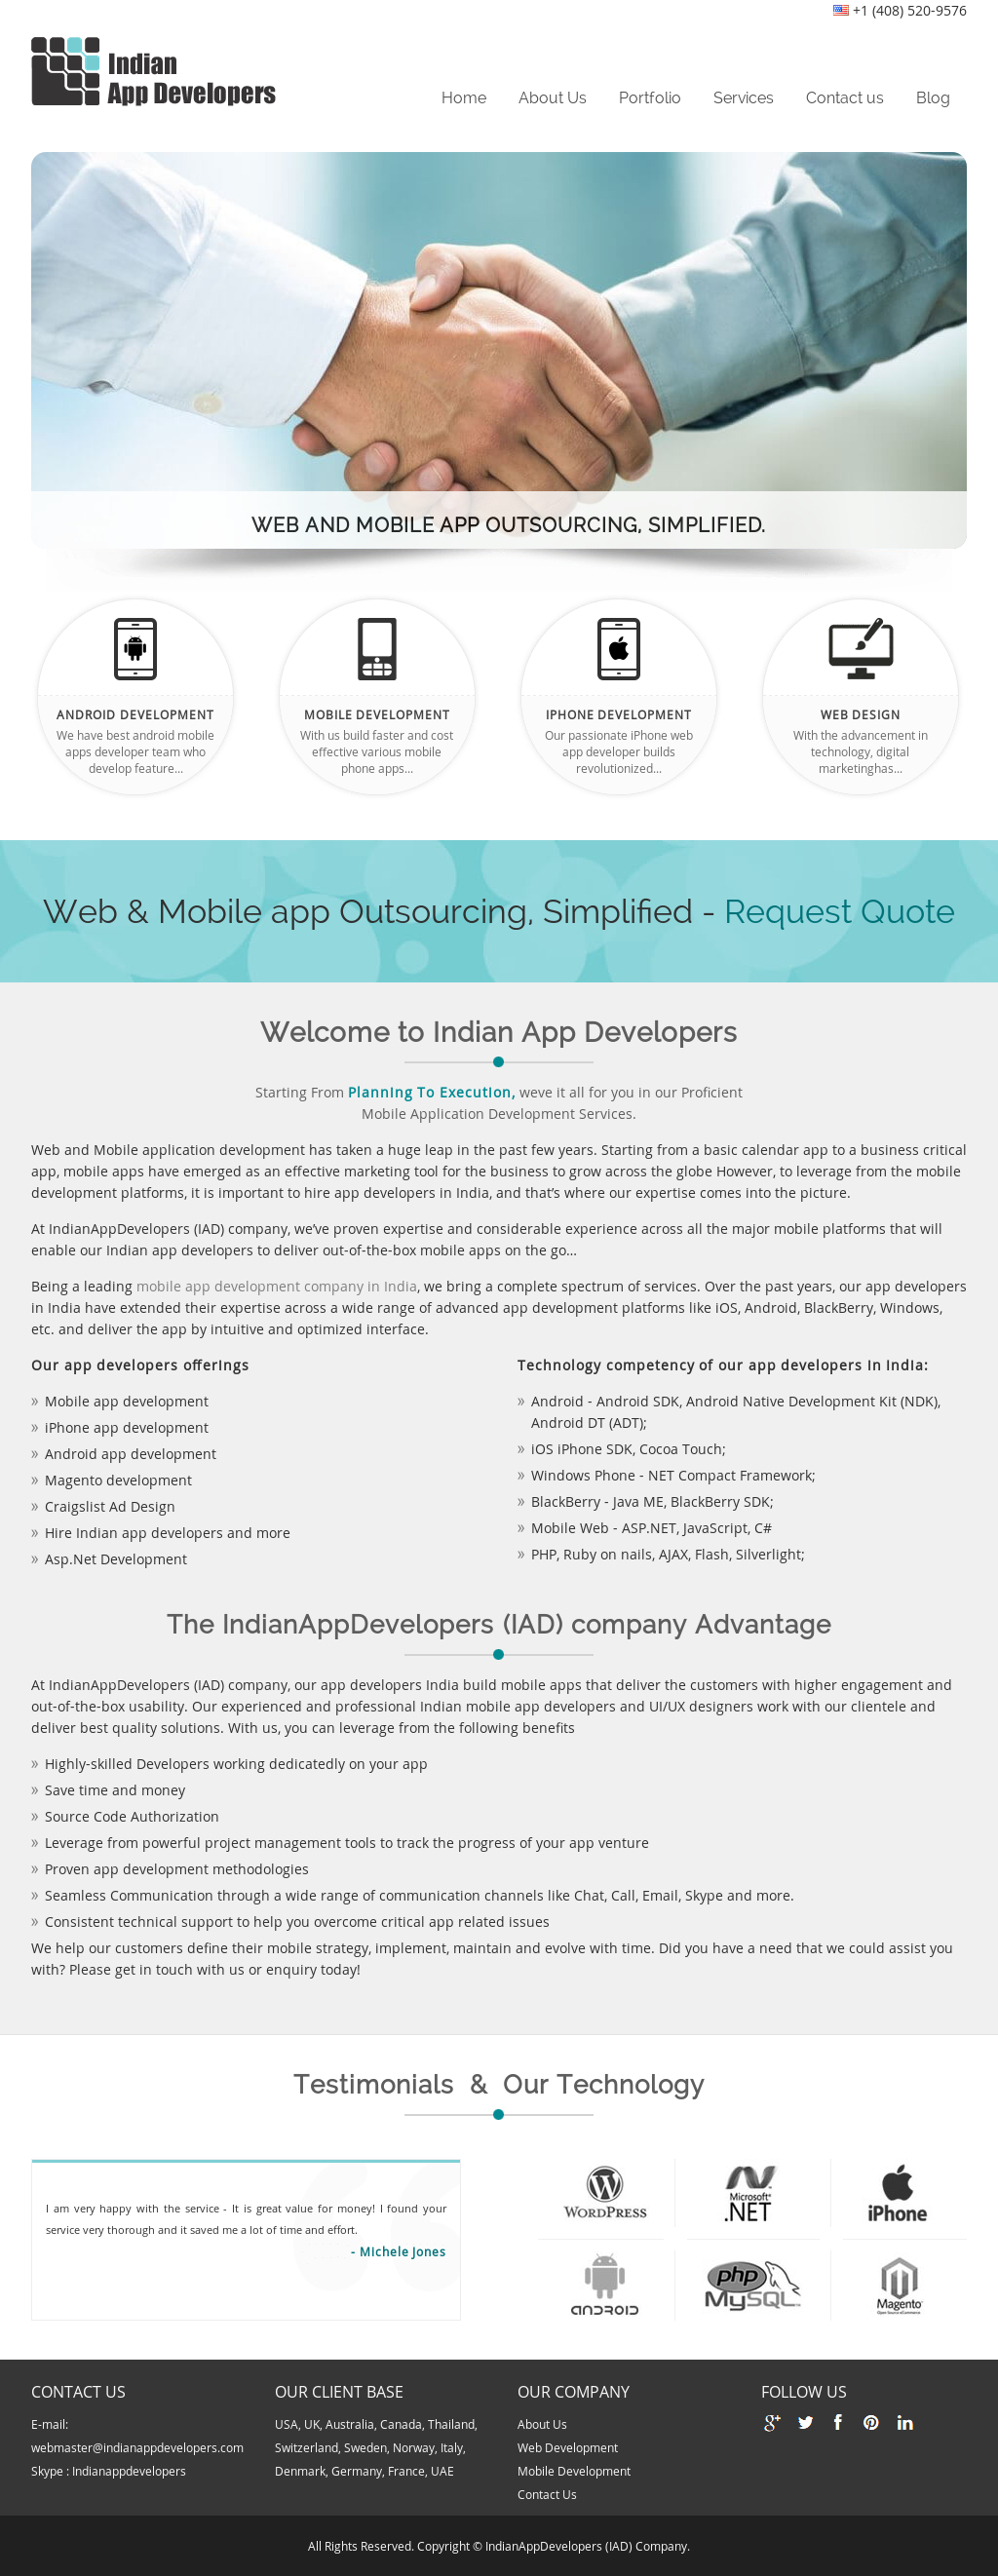 Indian App Developers Competitors, Revenue and Employees